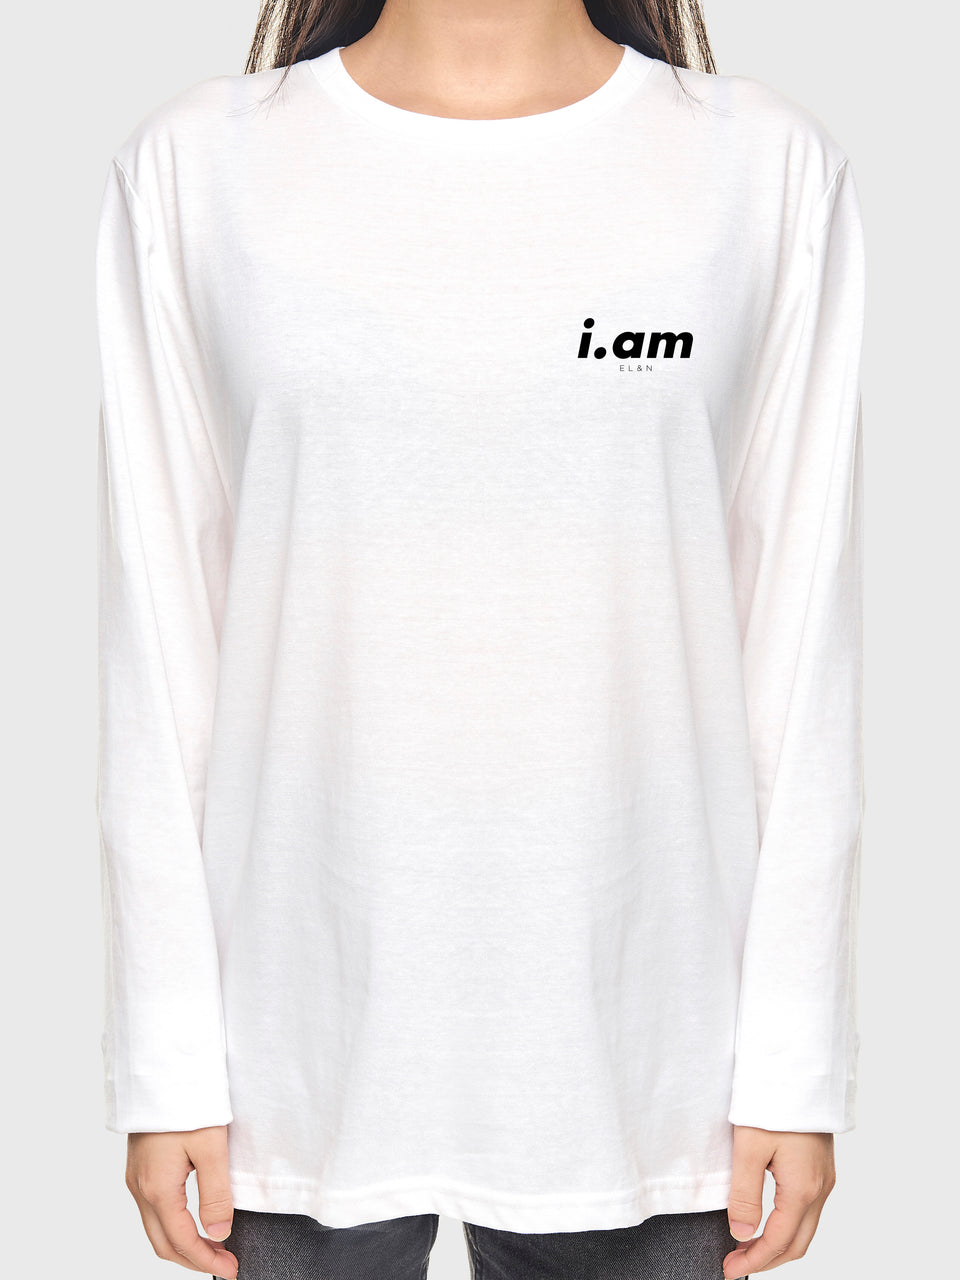 Making It - White - Unisex long Sleeve T